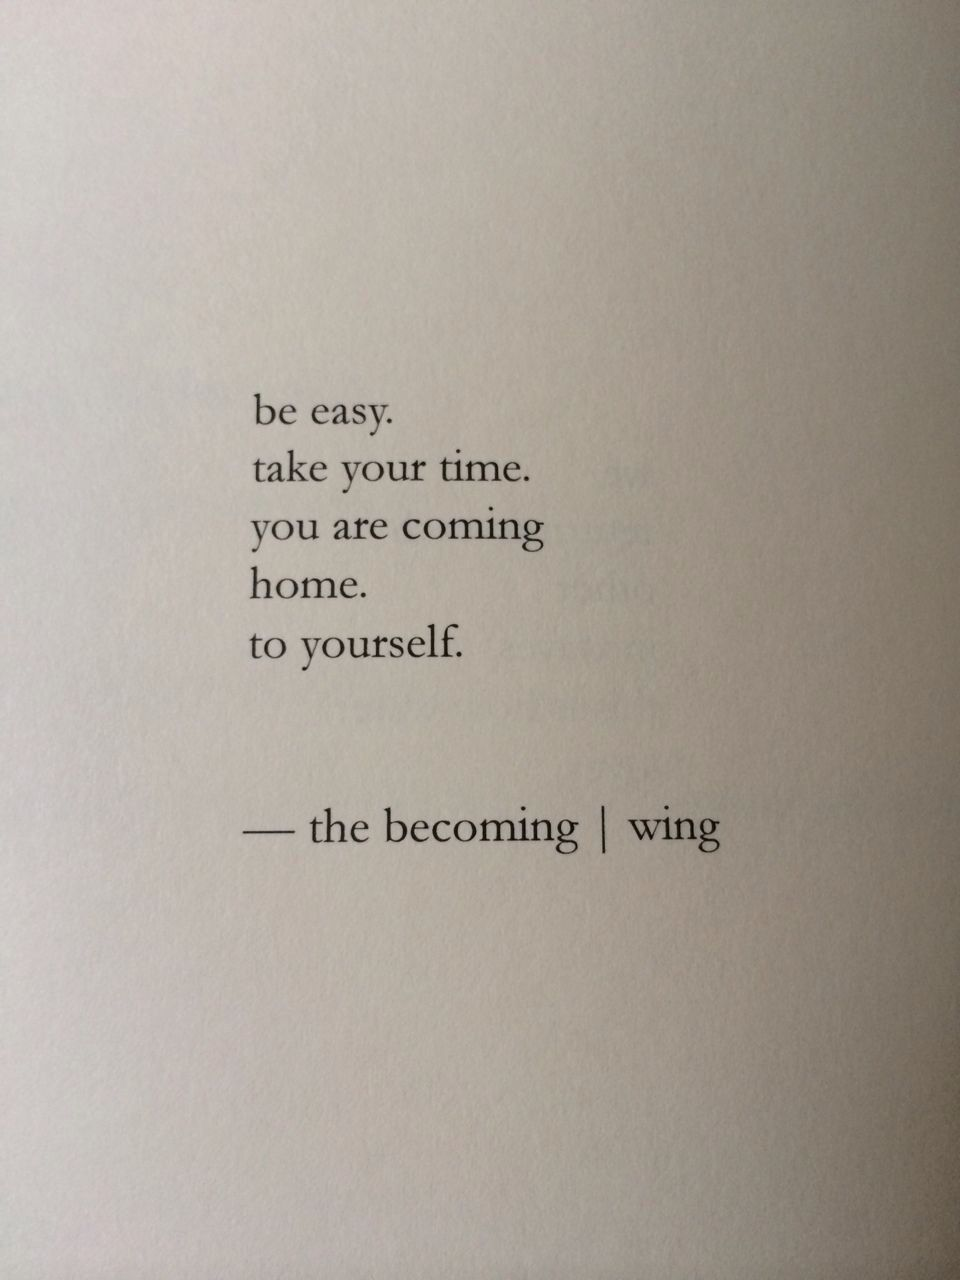 Coming Home Quotes Coming Home To Self  Writing & So Forth  Pinterest  Poem